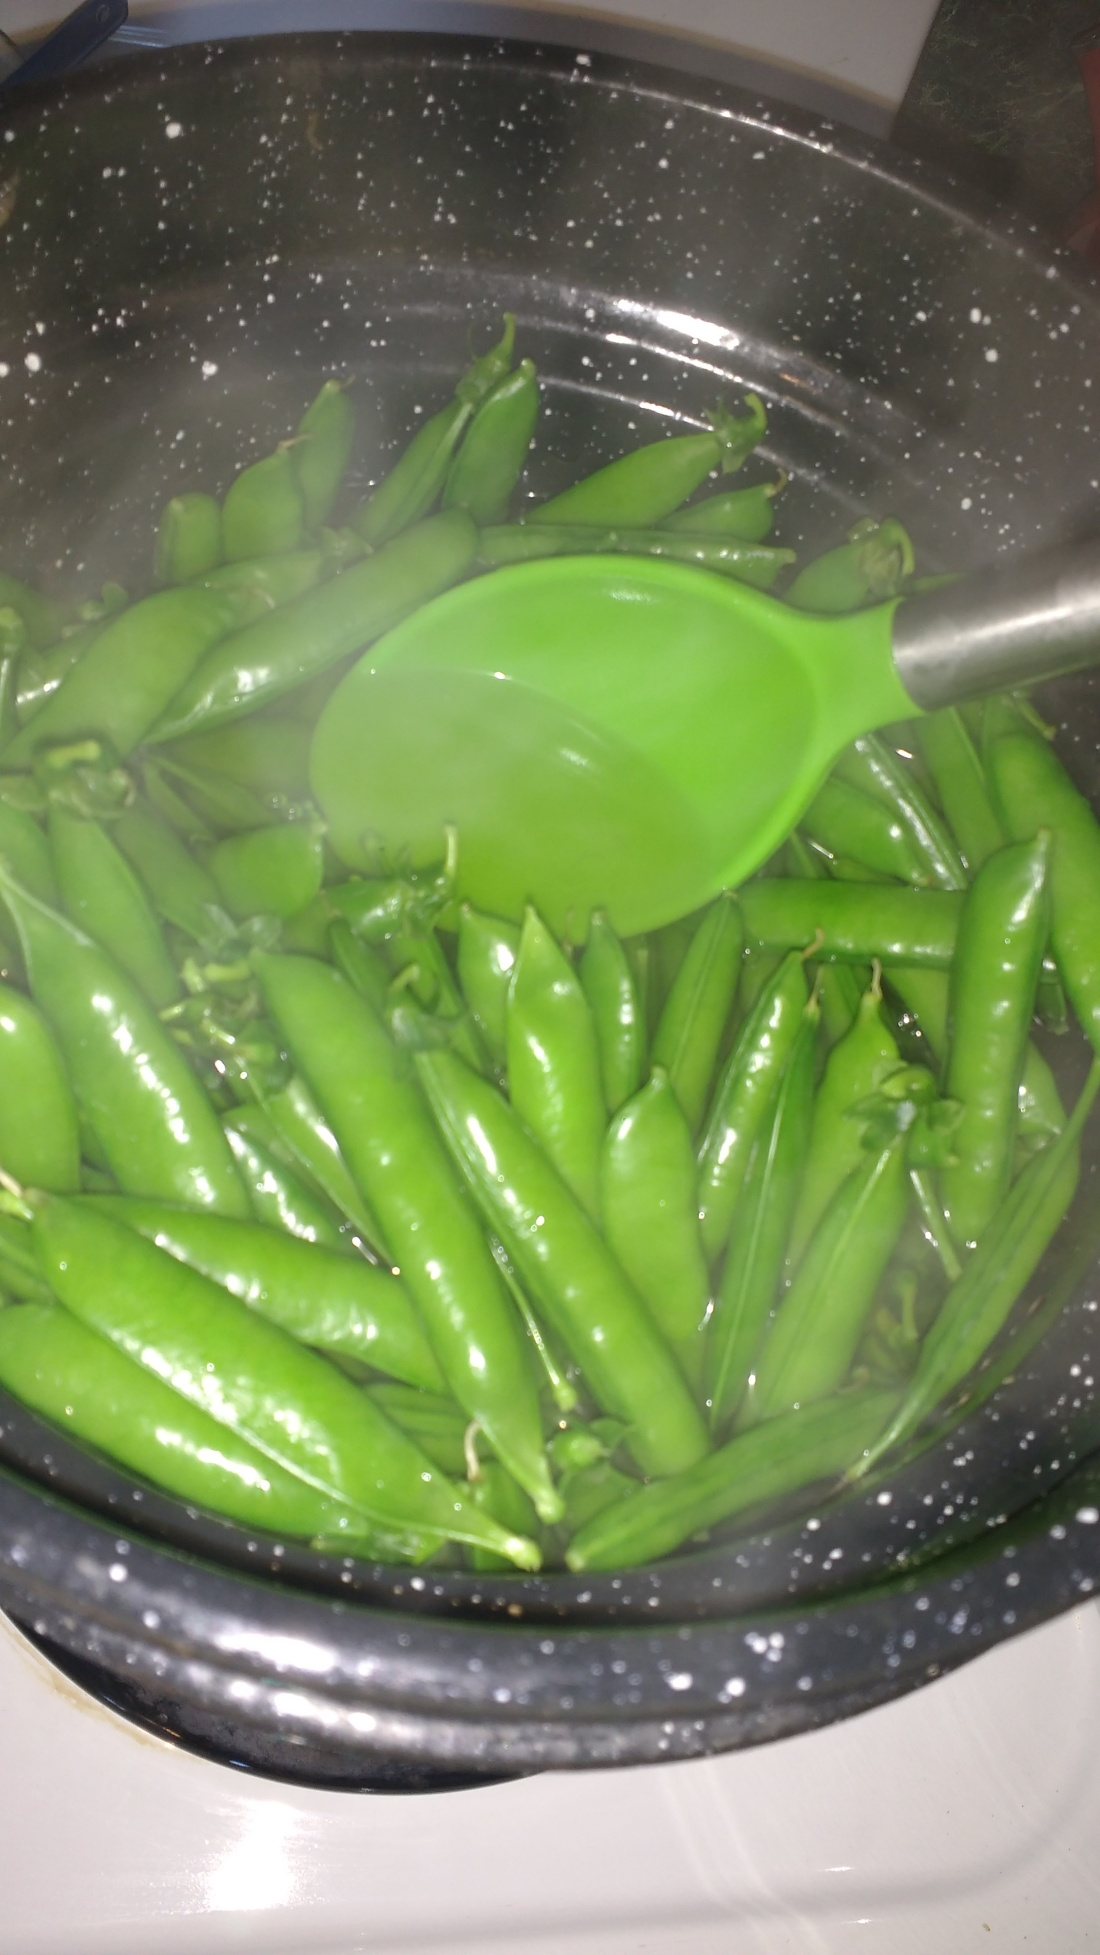 stir halfway through blanching